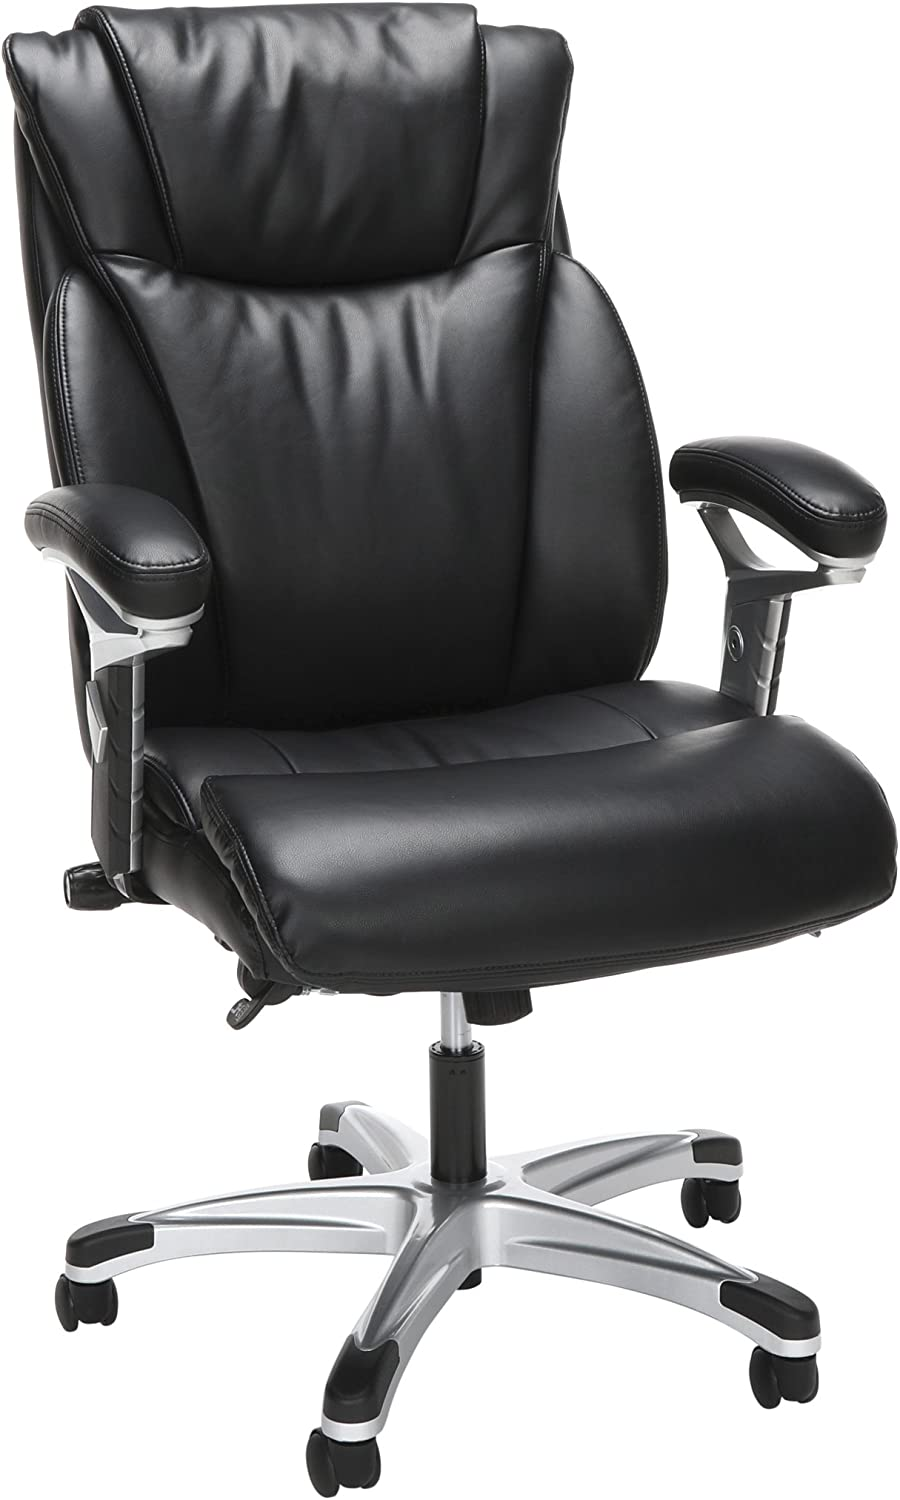 OFM Essentials Series Ergonomic Executive Bonded Leather Office Chair, in Black